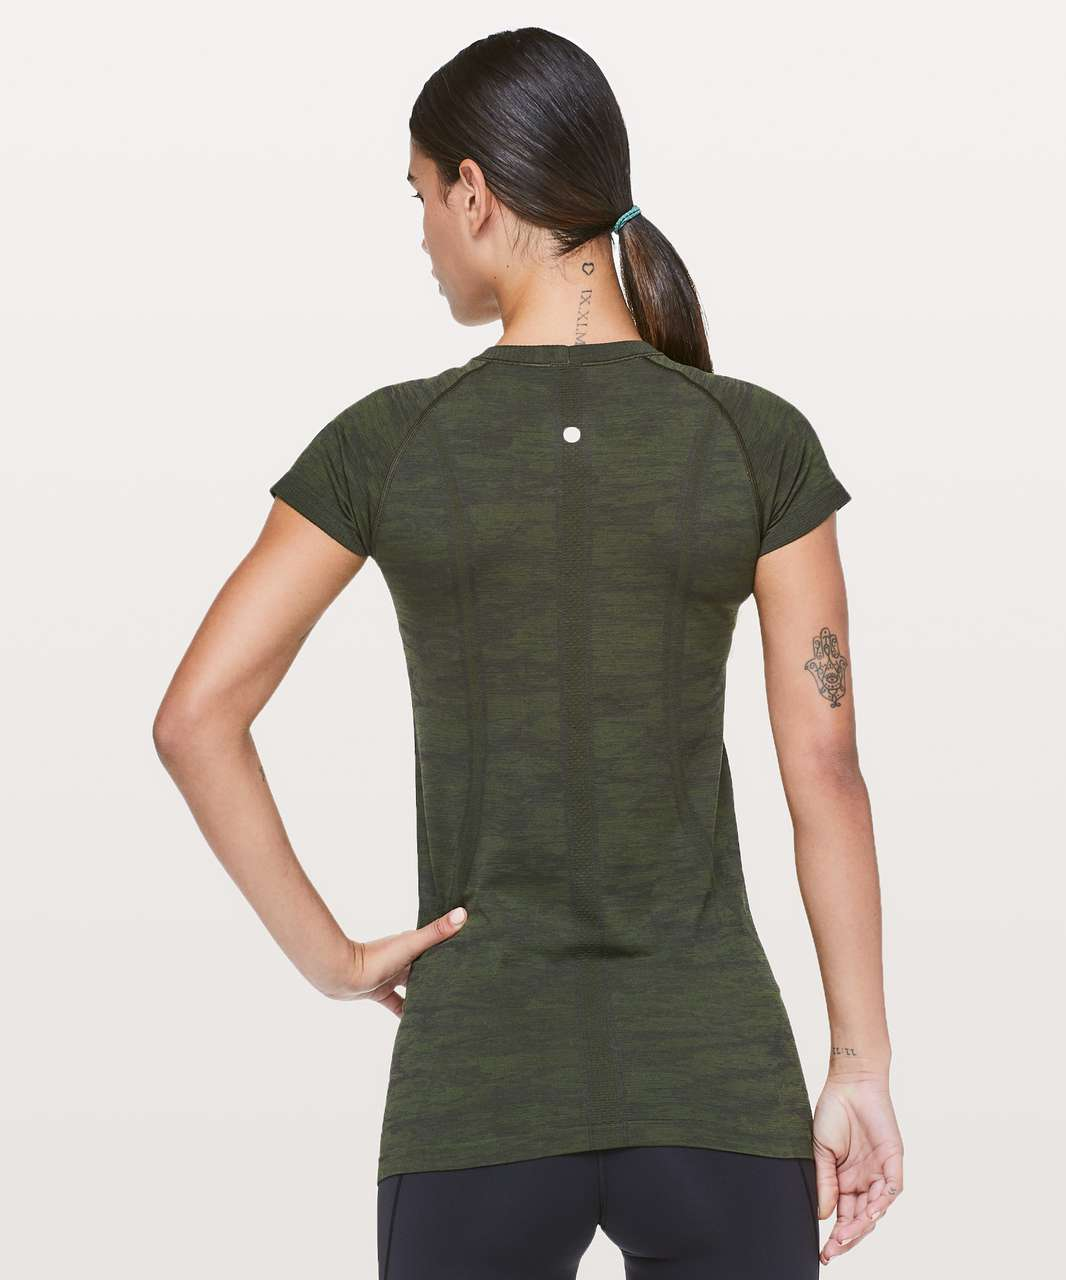 Lululemon Swiftly Tech Short Sleeve Crew - Dark Olive / Brave Olive / Black